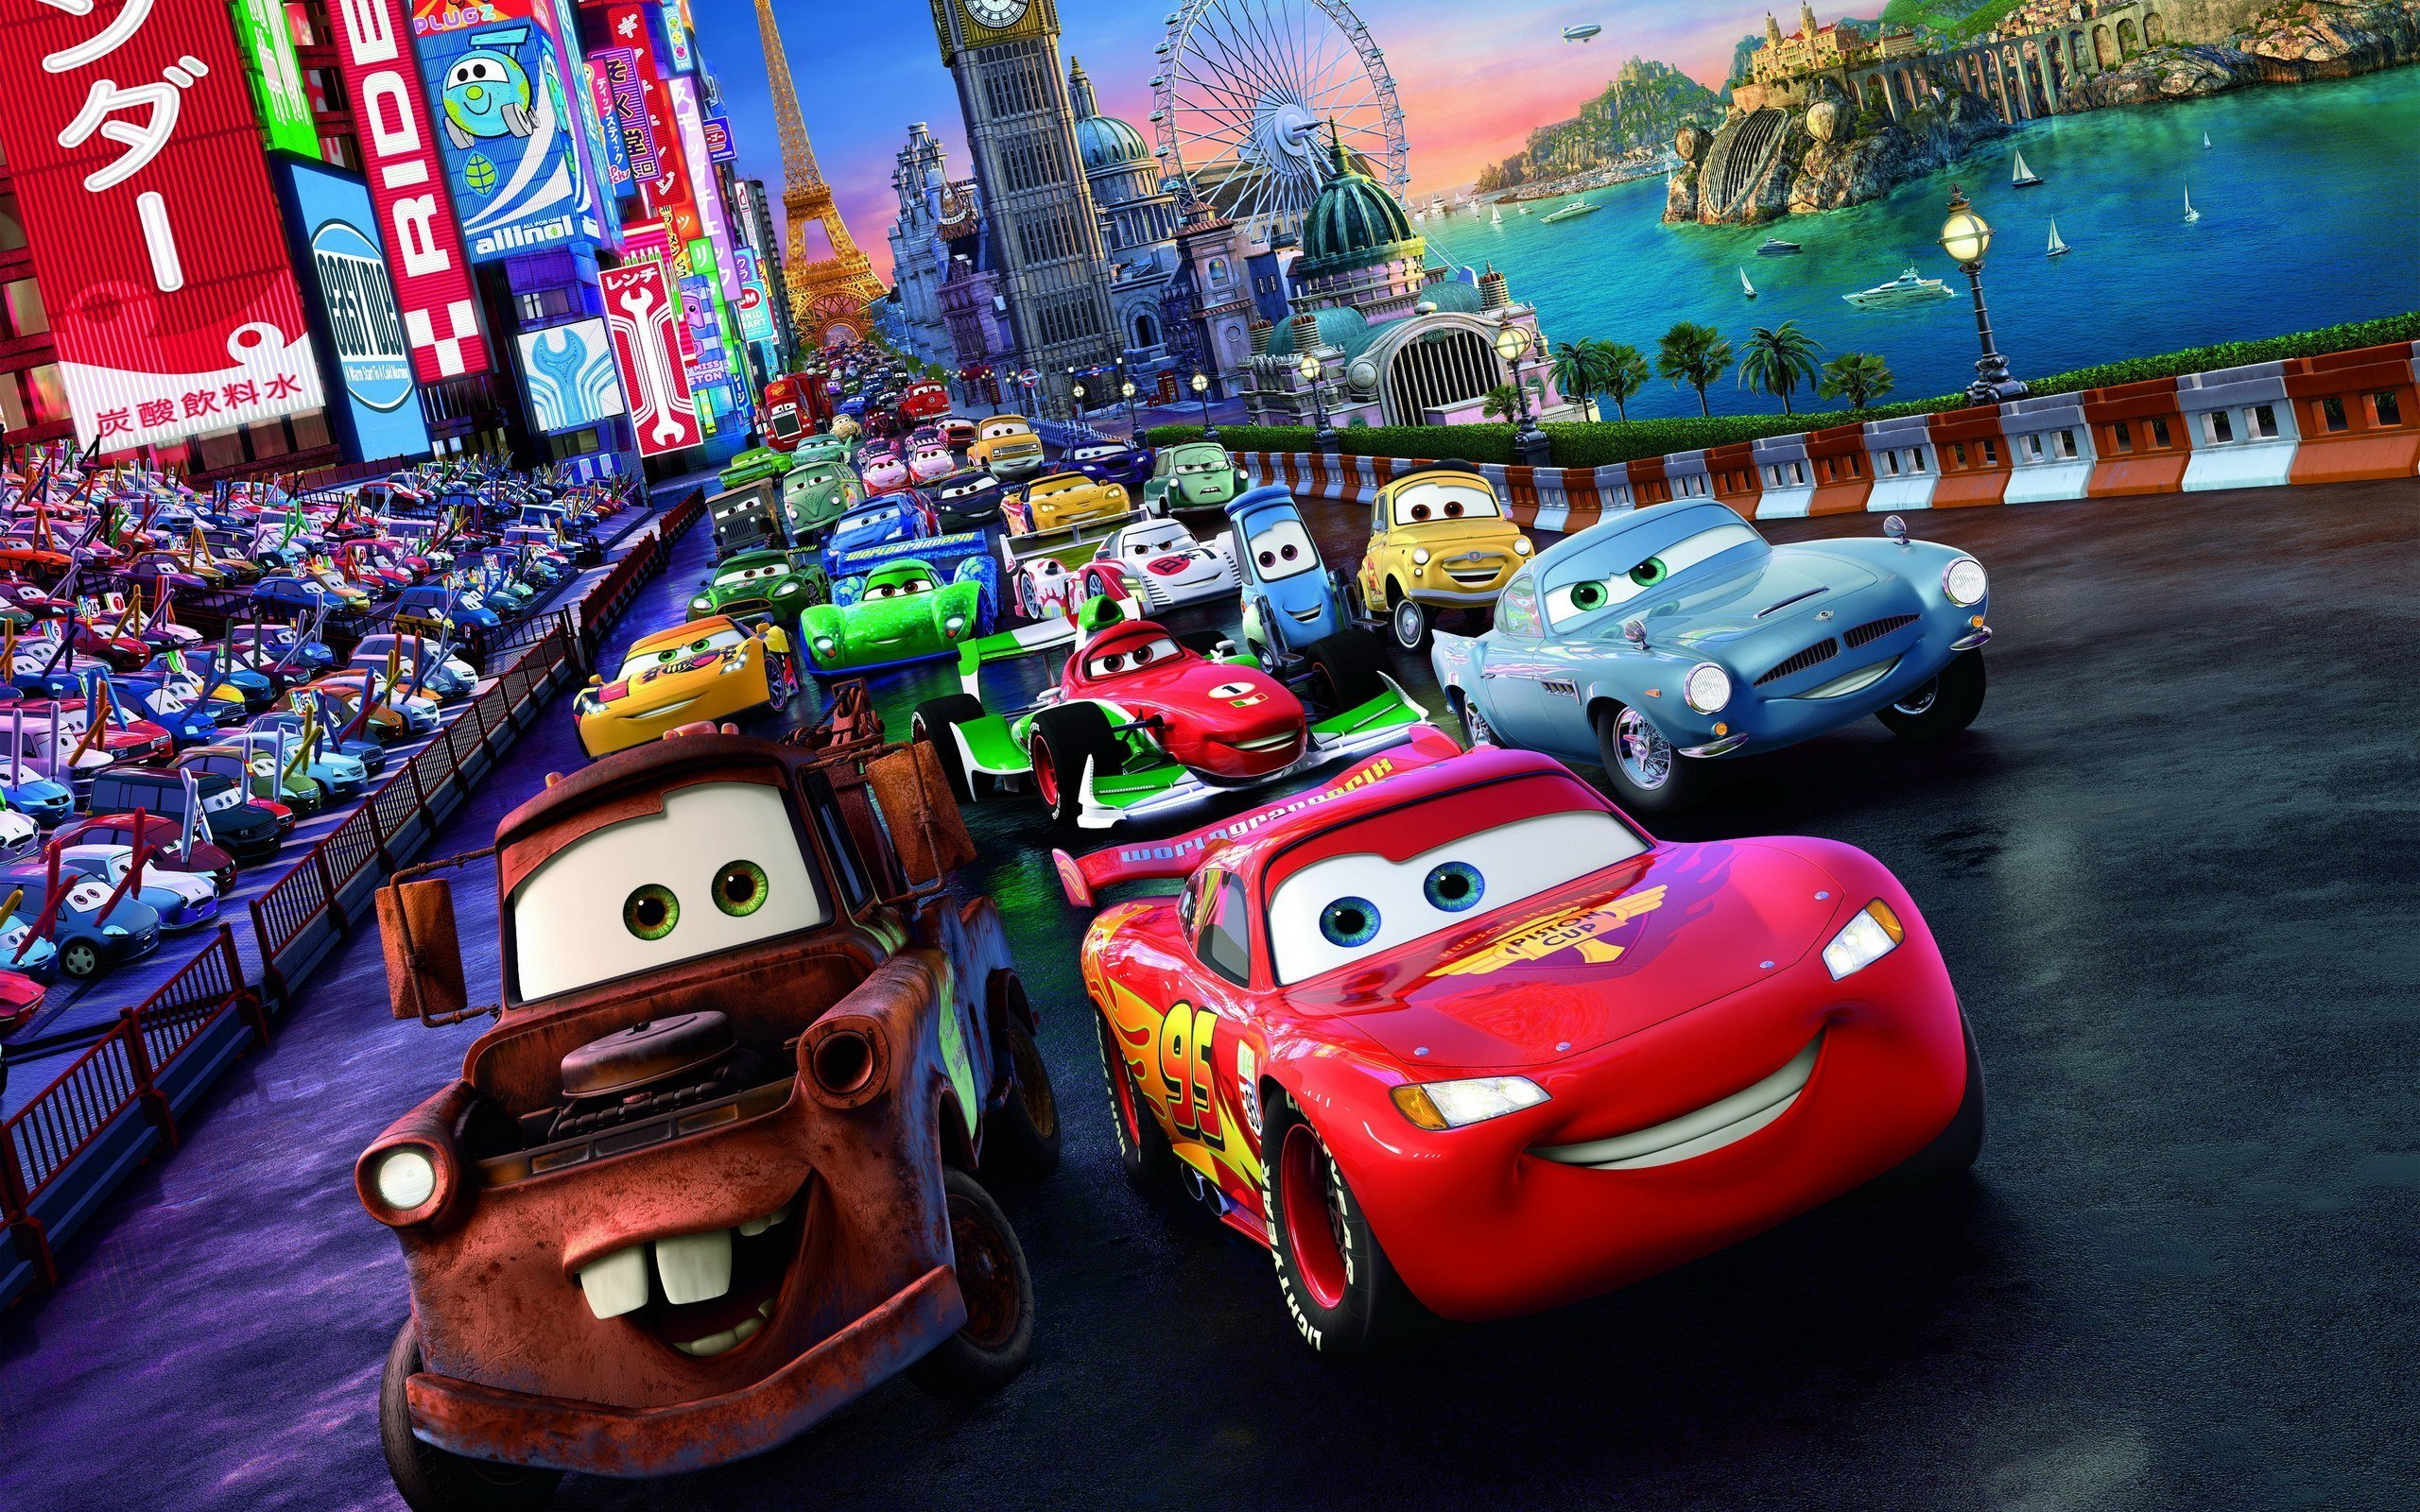 wallpaper-animated-disney-film-drift-pixar-tokio-cars-wallpapers-windows8-racing-sport-wilson